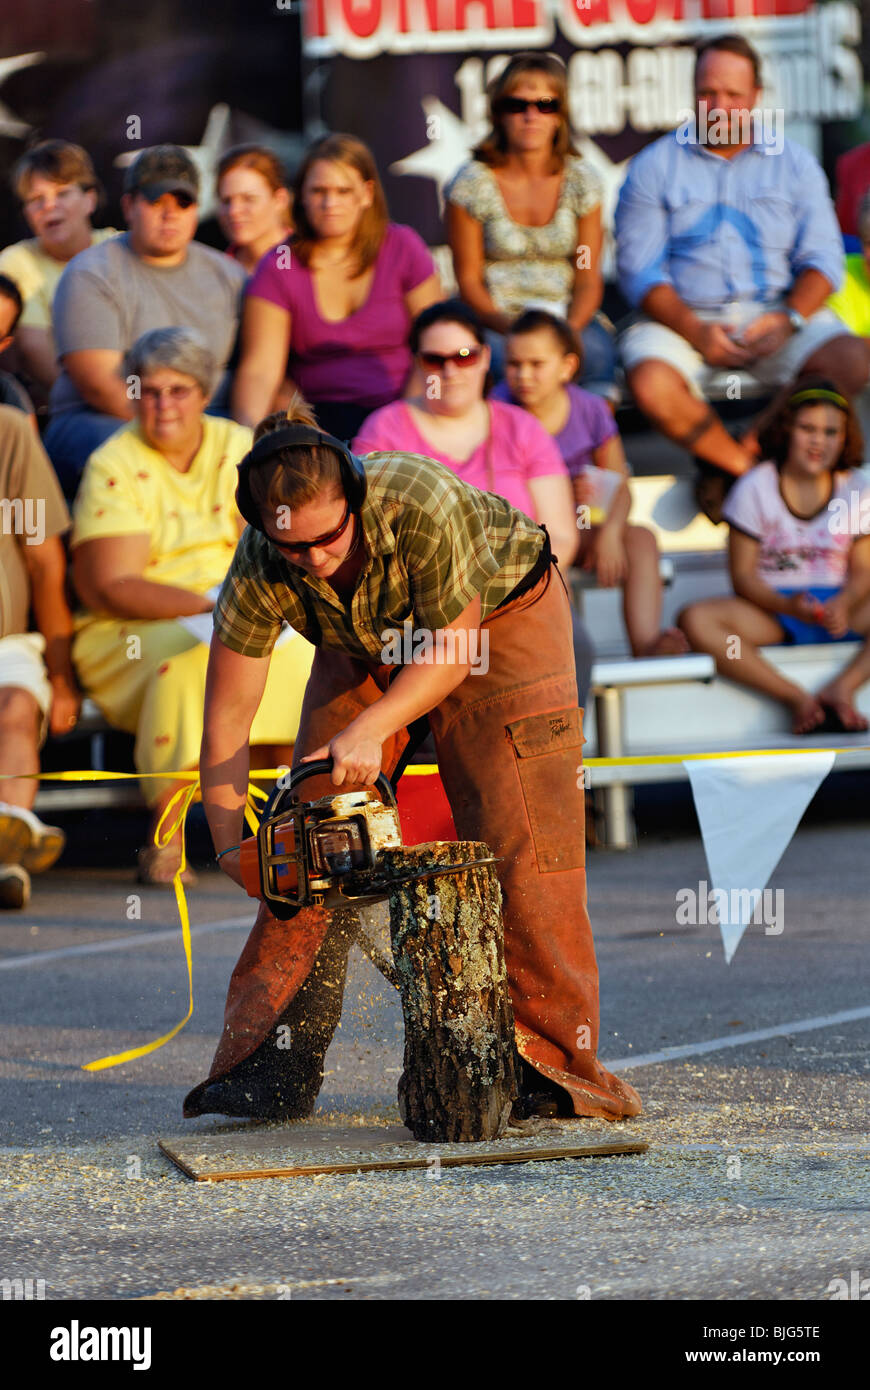 Female Lumberjack Demonstrating Chainsaw Carving at the 2009 Kentucky State Fair in Louisville - Stock Image